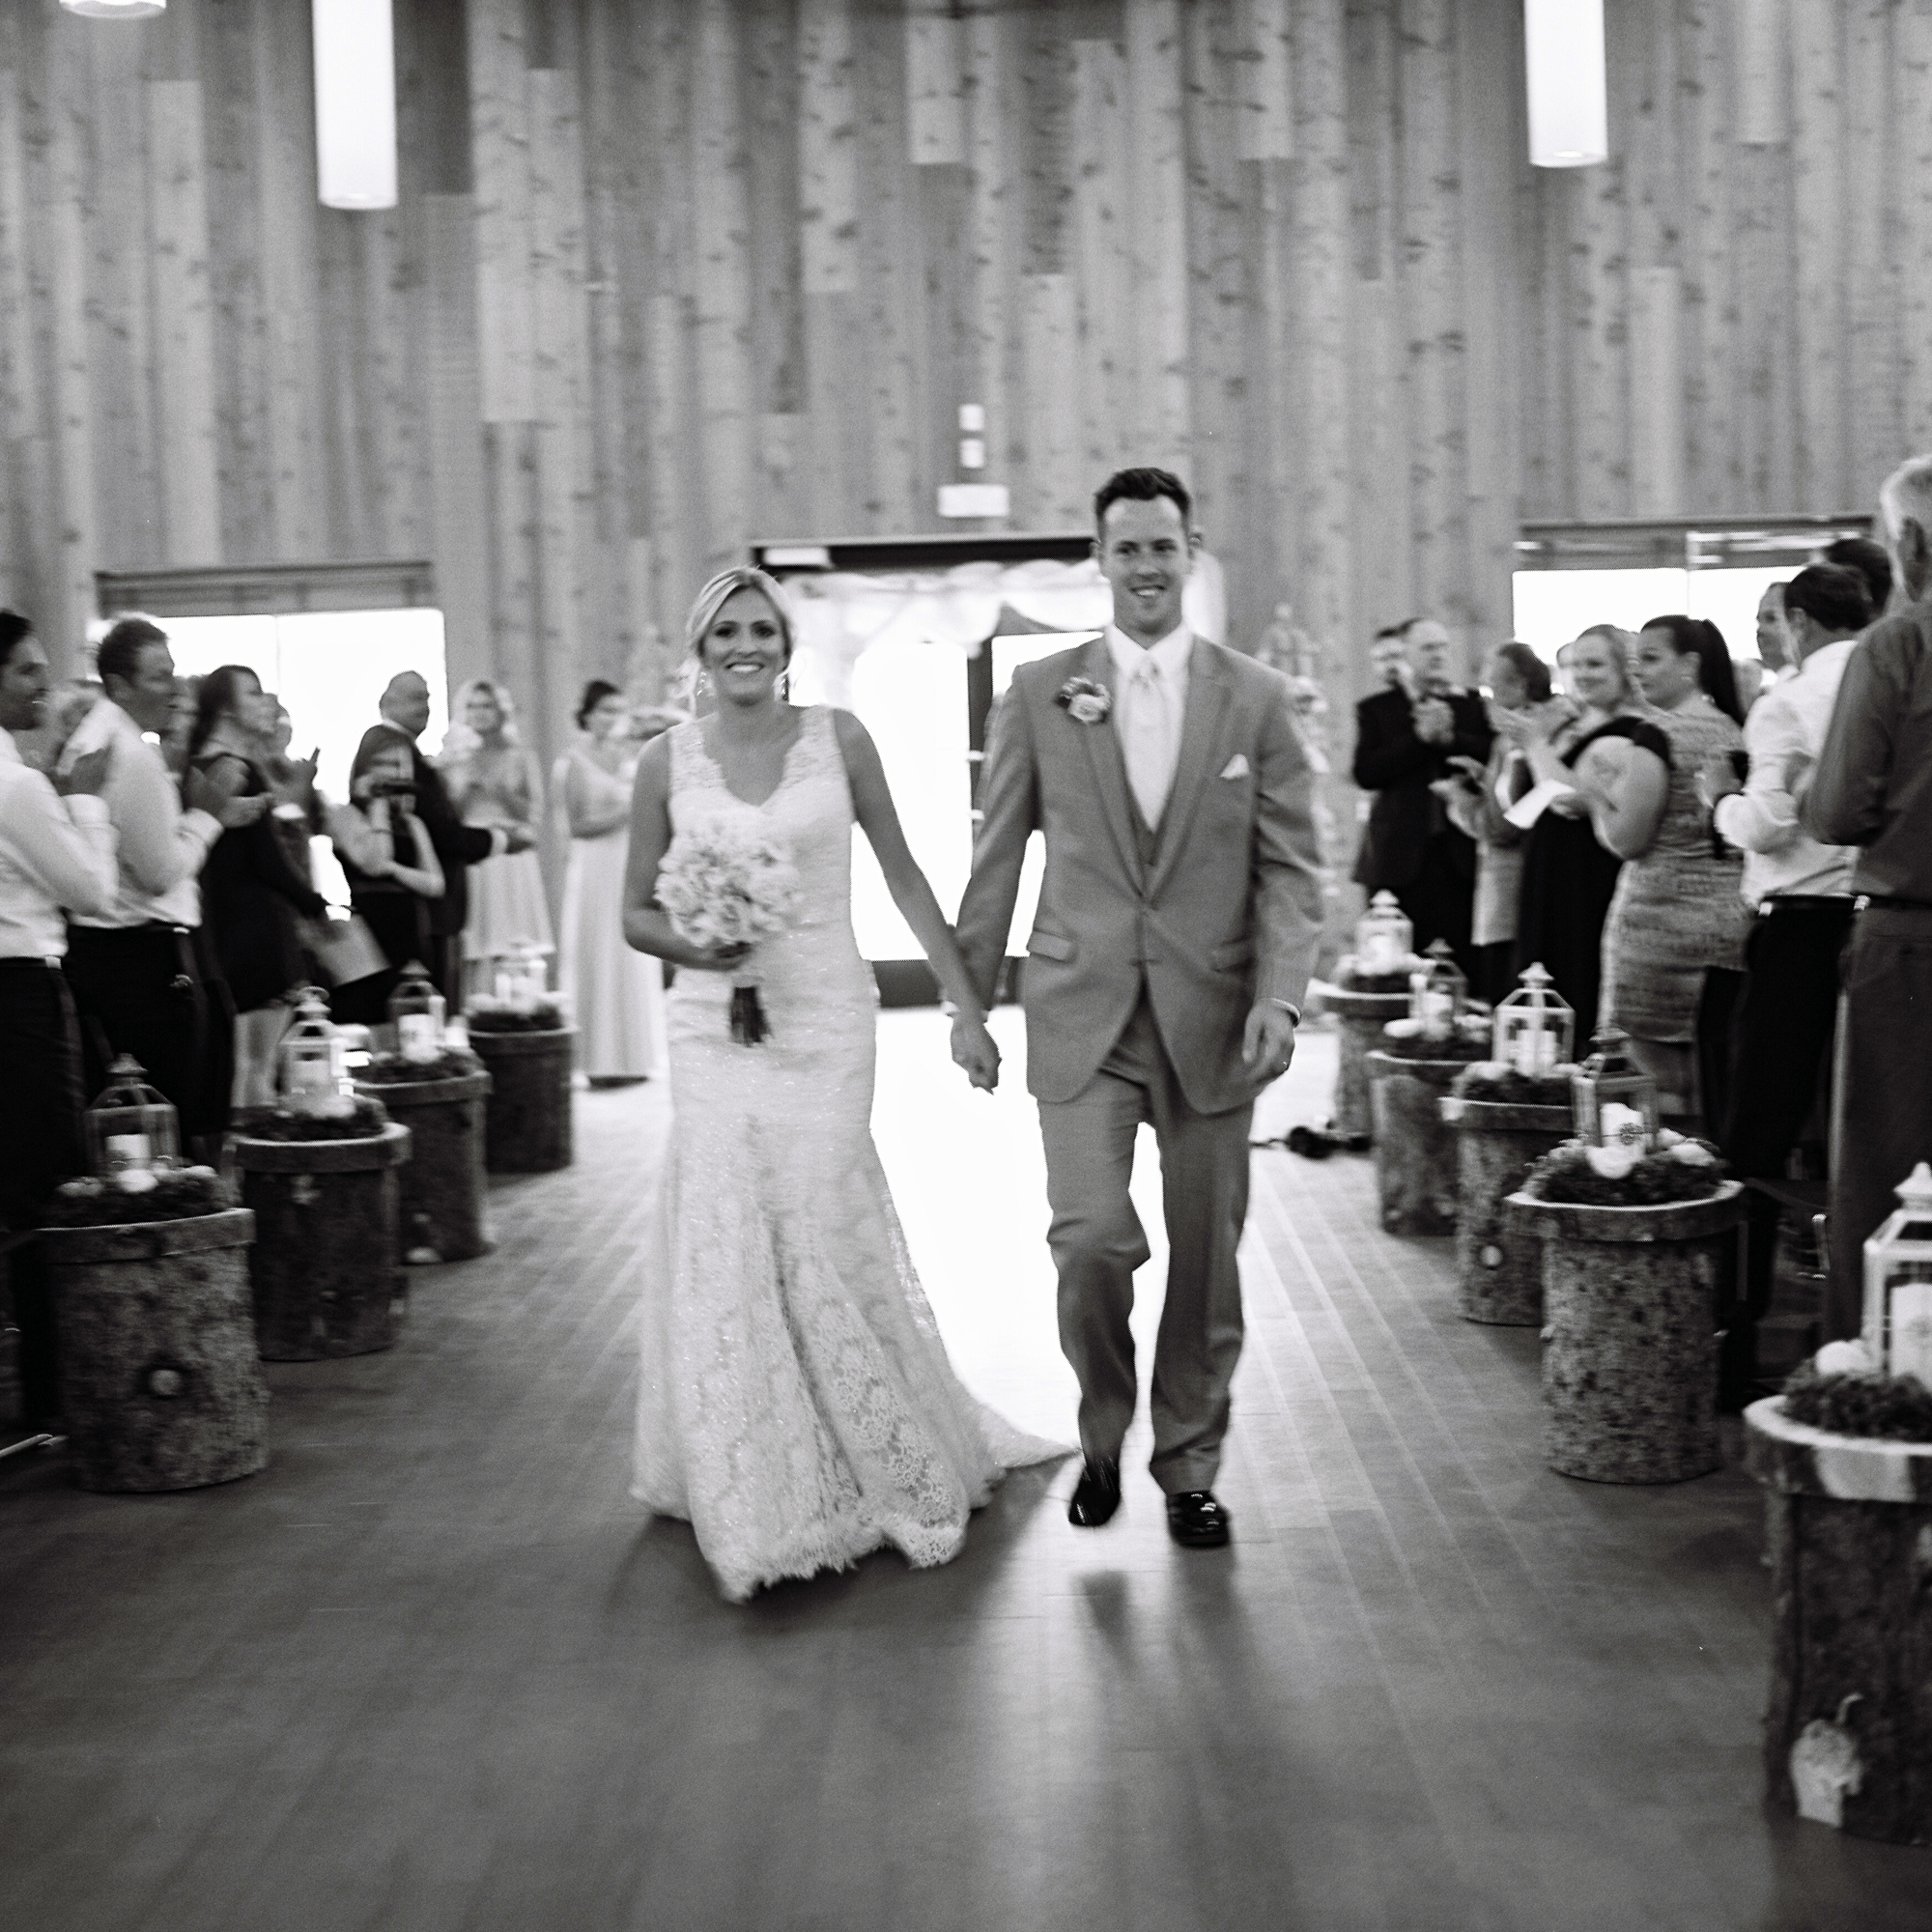 Bride and groom walking down aisle after wedding ceremony